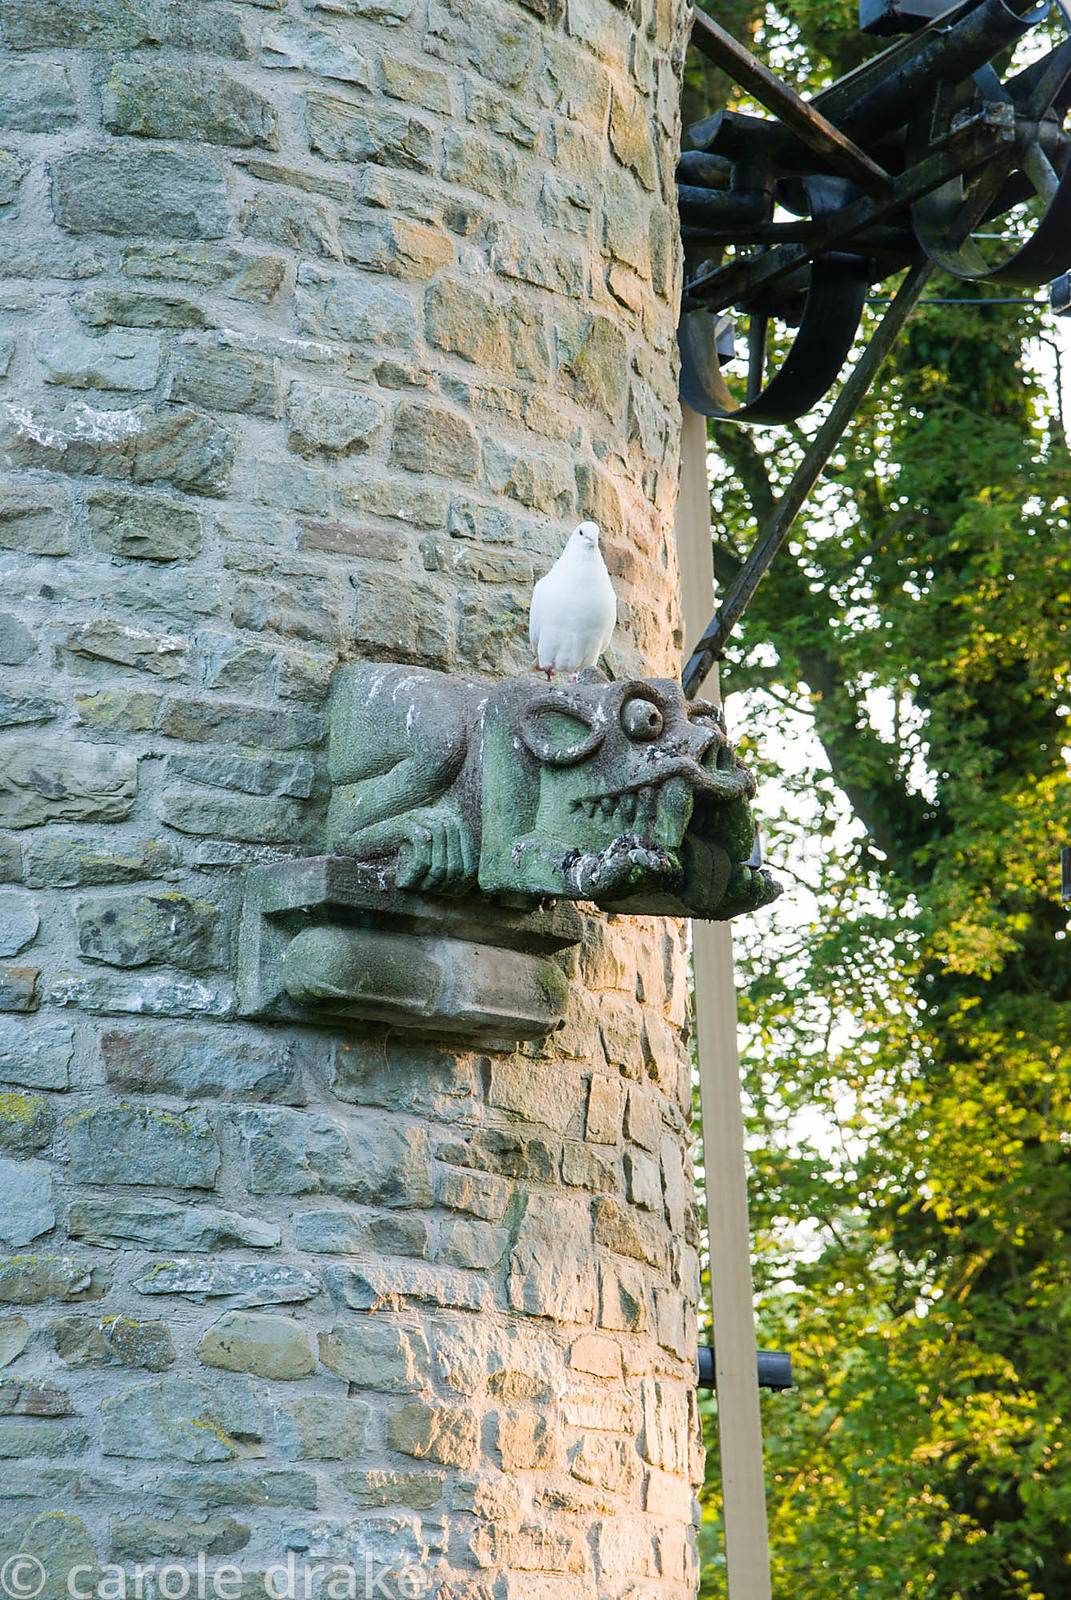 Dove perched on gargoyle on dovecot/water tower. Westonbury Mill Water Garden, Pembridge, Herefordshire, UK